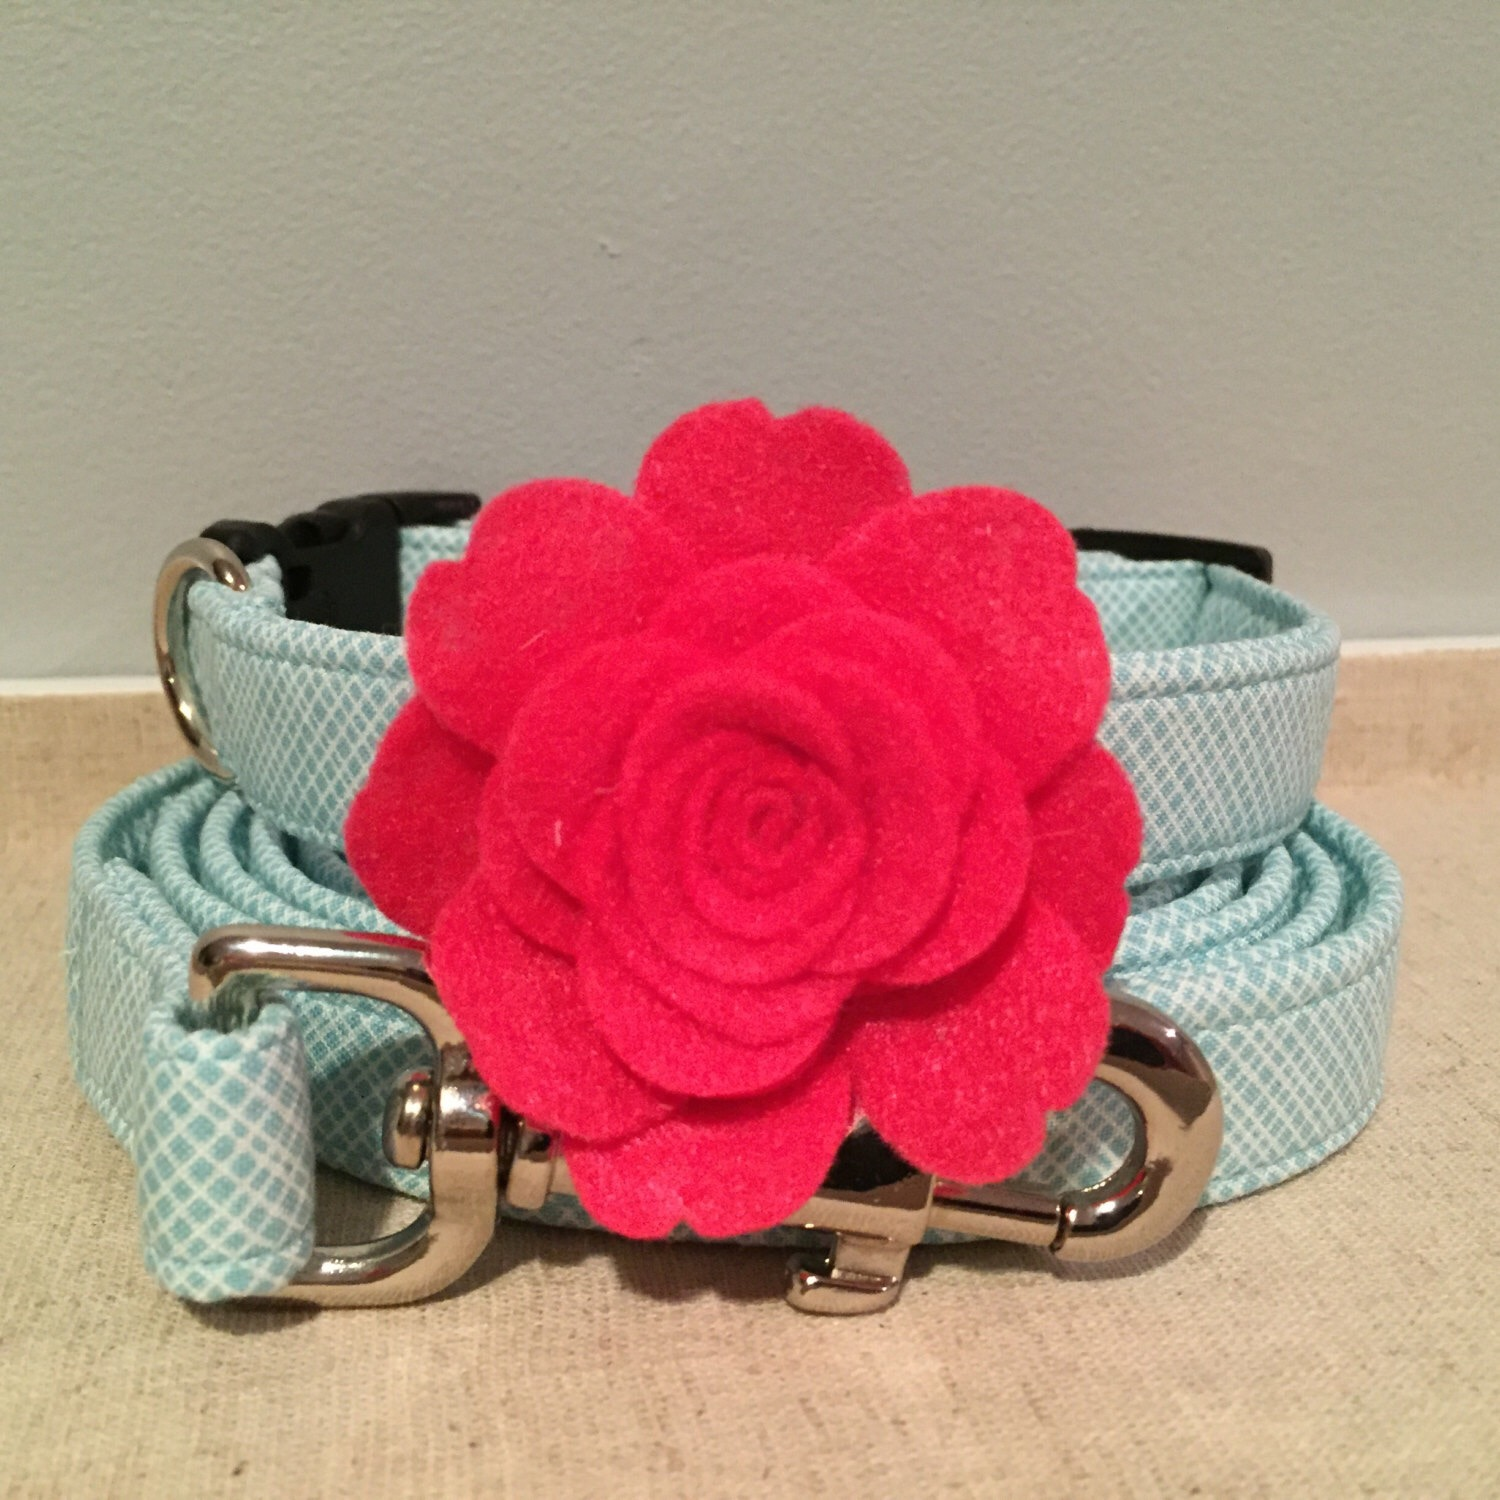 Spoiled Paws Bowtique features handmade detachable flowers and collars.